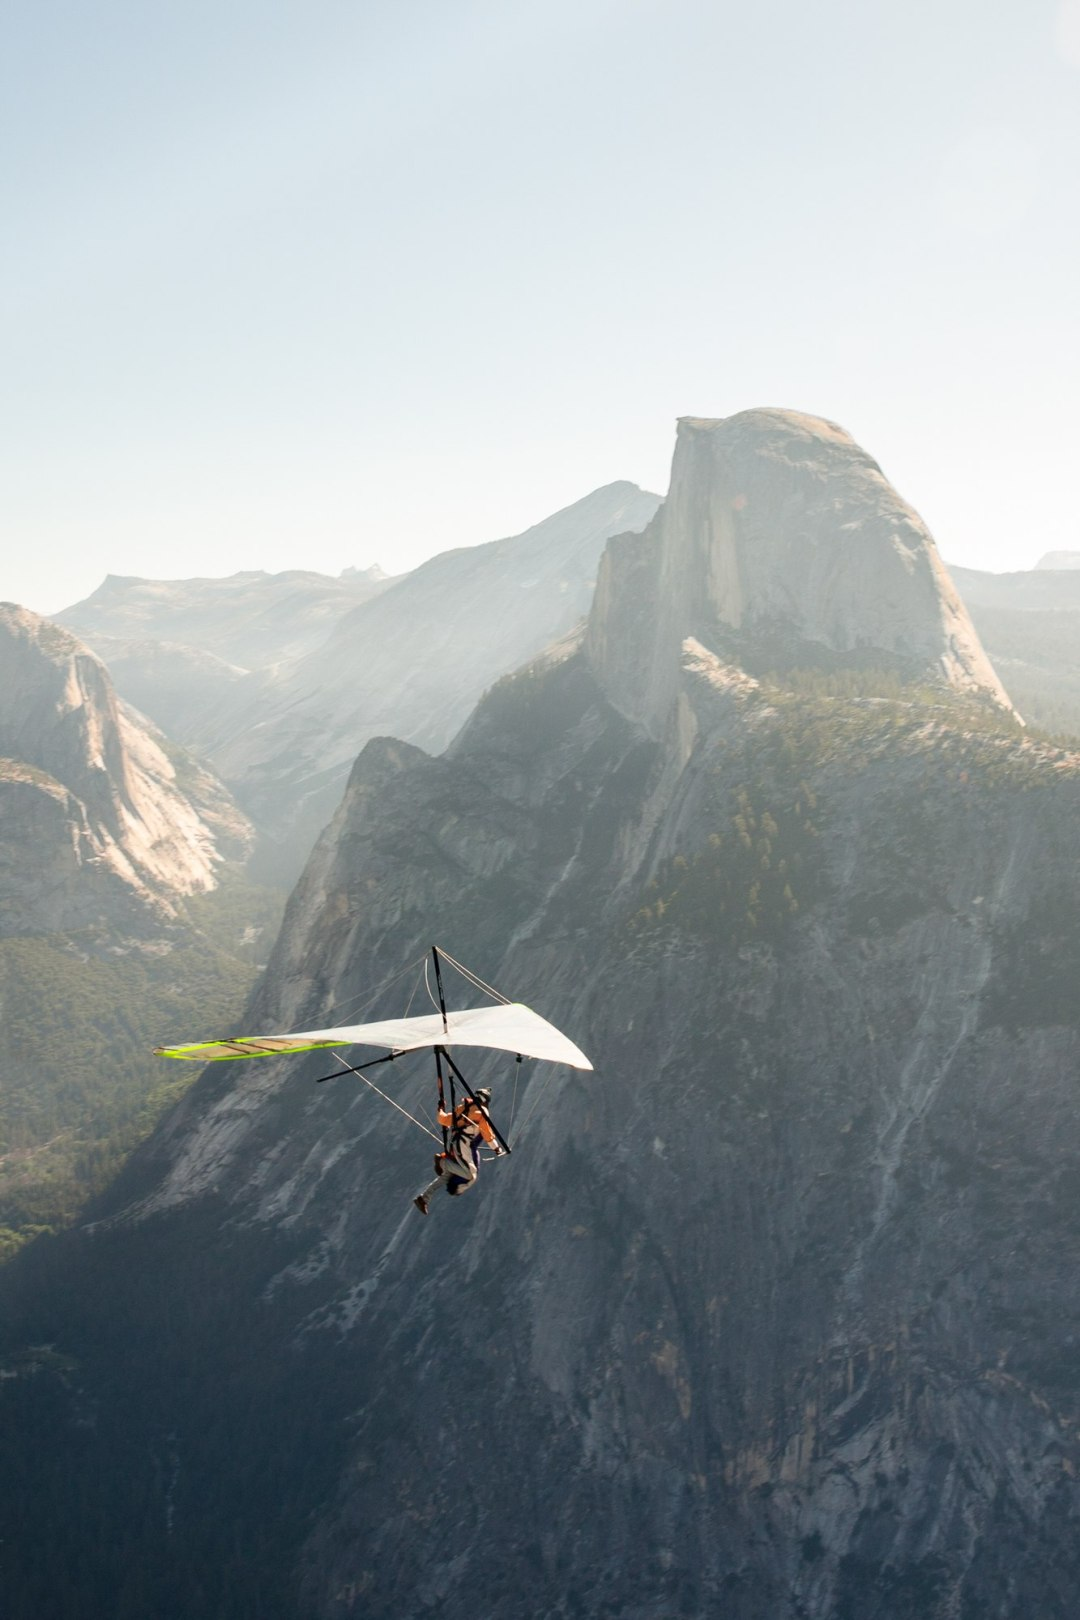 Caught this hang glider taking off on a beautiful morning in Yosemite.